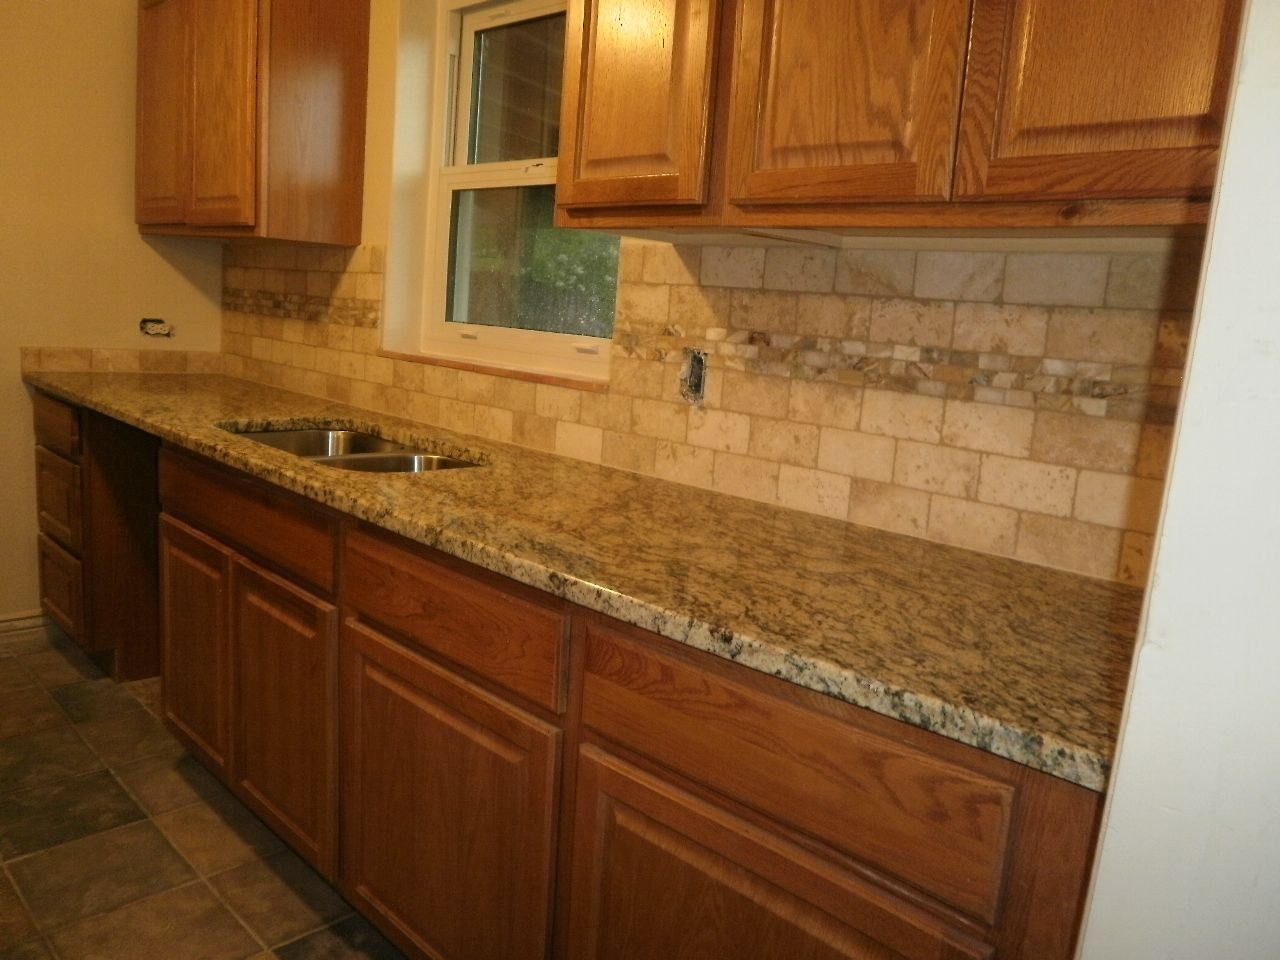 kitchen countertop stone options anti fatigue mat backsplash ideas granite countertops